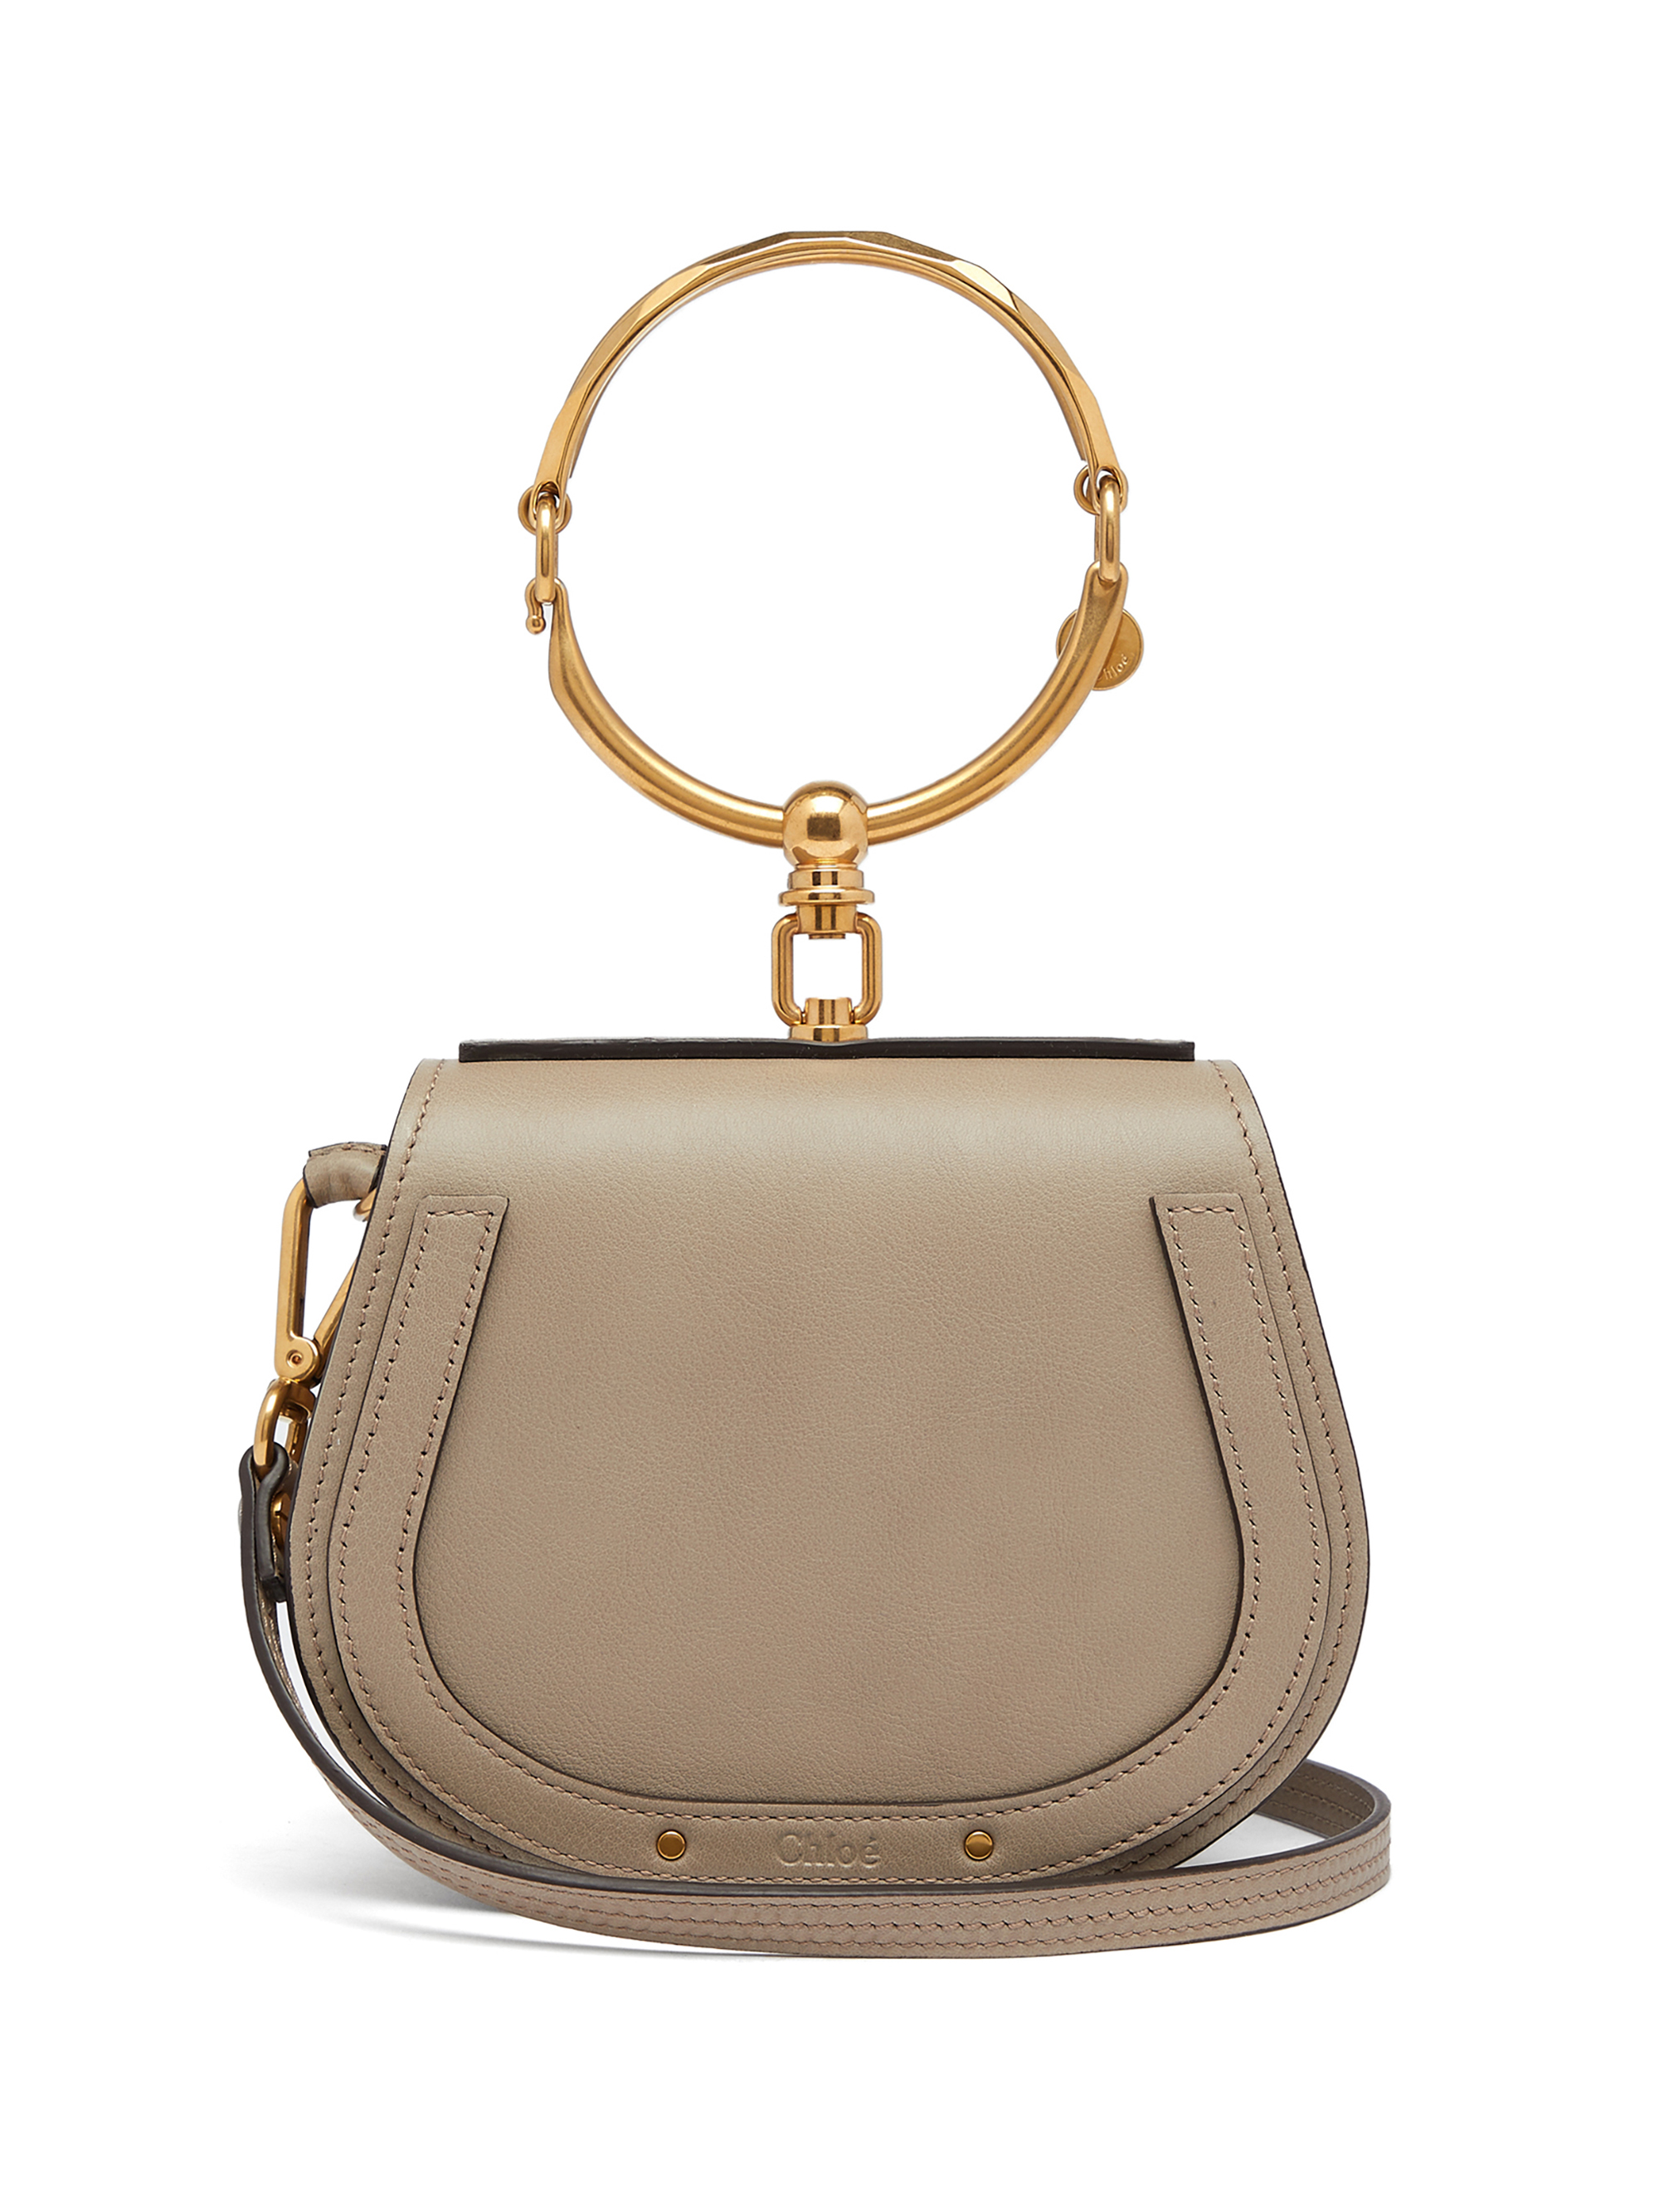 5. Chloé Nile Small Leather and Suede Cross-Body Bag in Grey $1,690 from www.matchesfashion.com